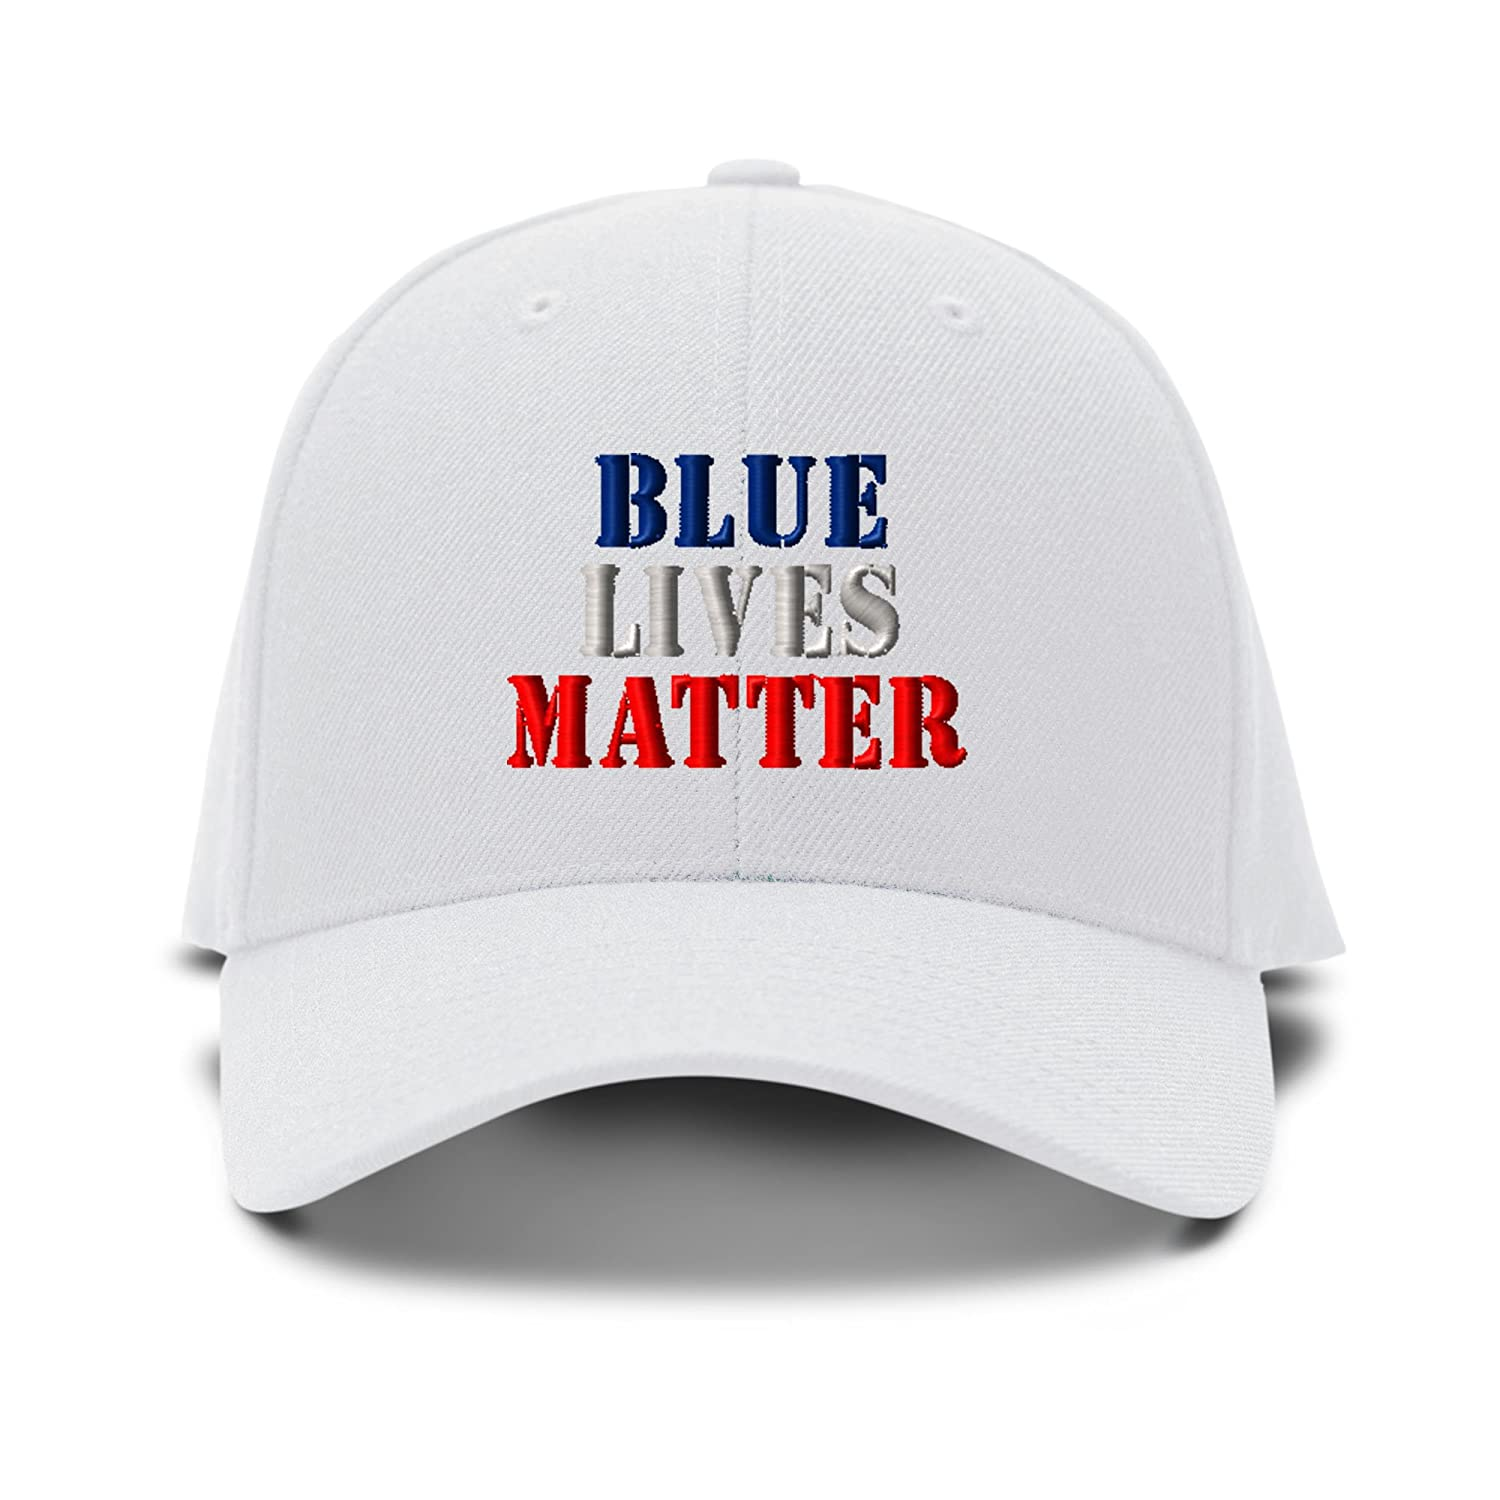 Amazon.com  Blue Lives Matter Police Embroidery Adjustable Structured Baseball  Hat White  Clothing 4d4e07e29ca3